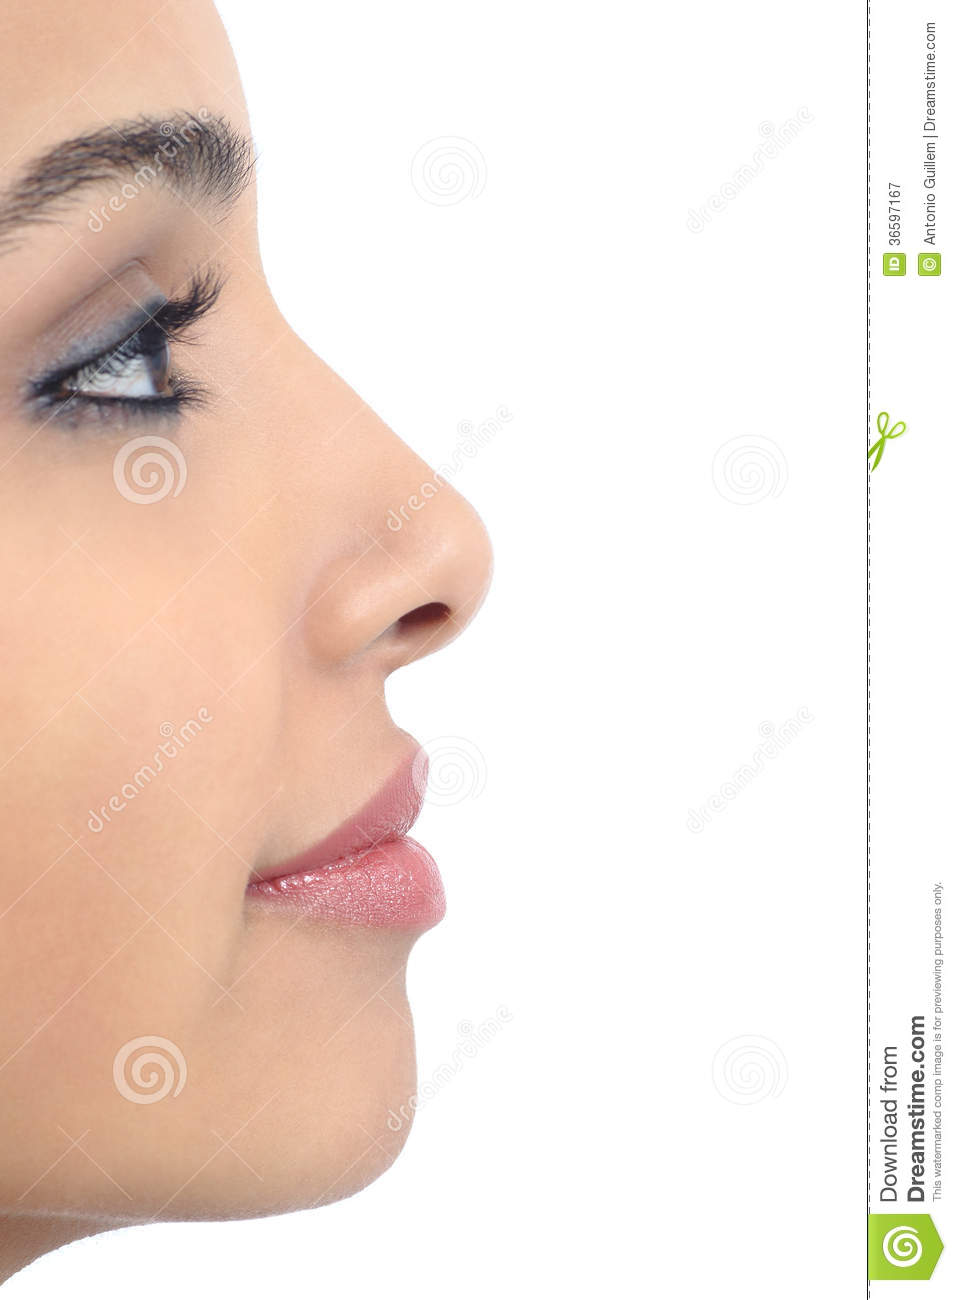 Profile of a perfect woman nose isolated on a white background Female Nose Profile